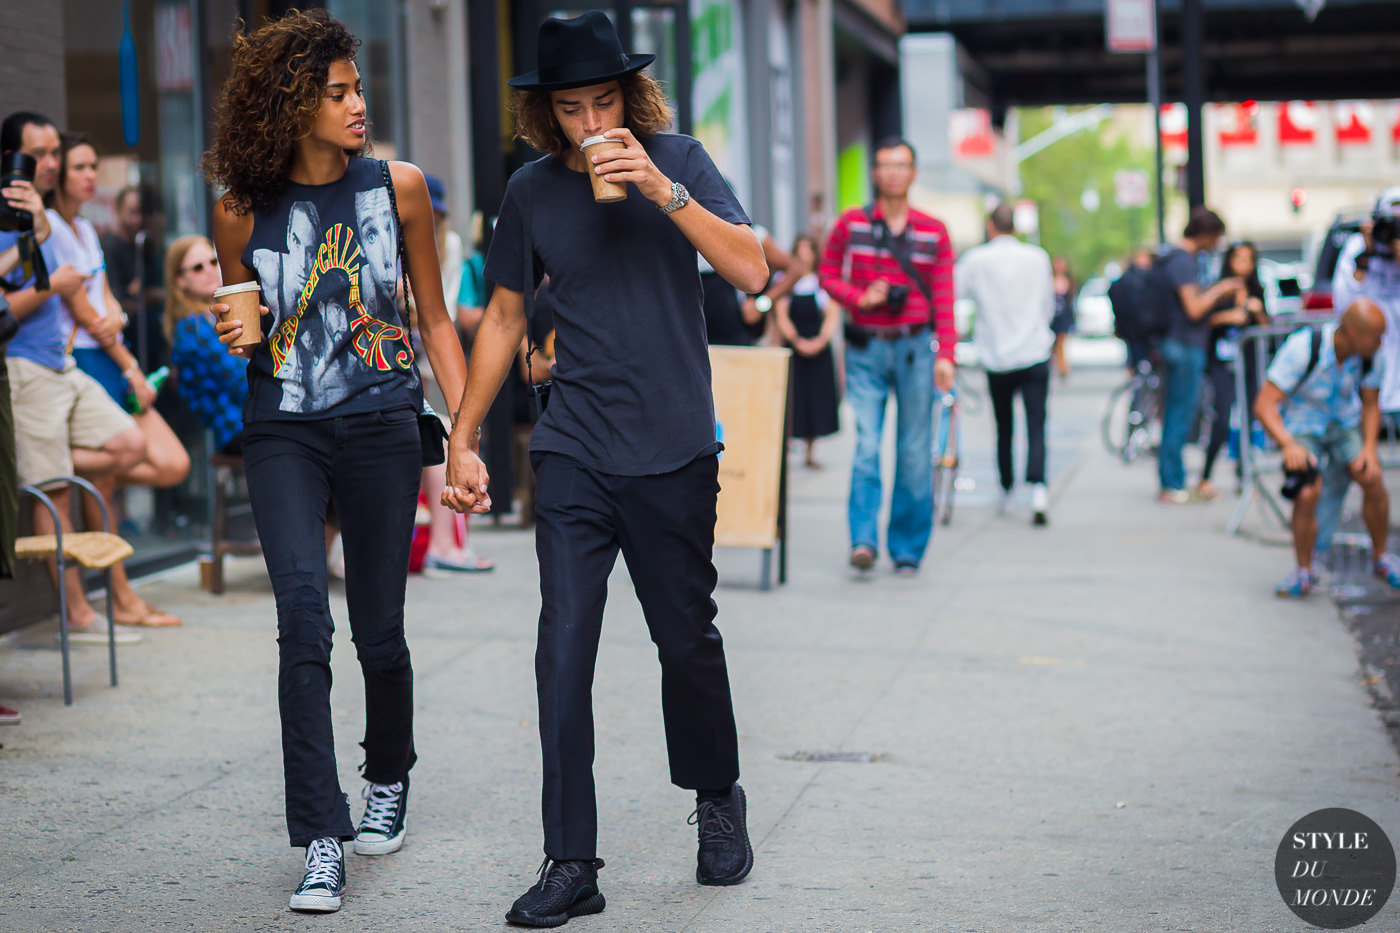 Imaan Hammam and Naleye Junior Dolmans Street Style Street Fashion Streetsnaps by STYLEDUMONDE Street Style Fashion Photography